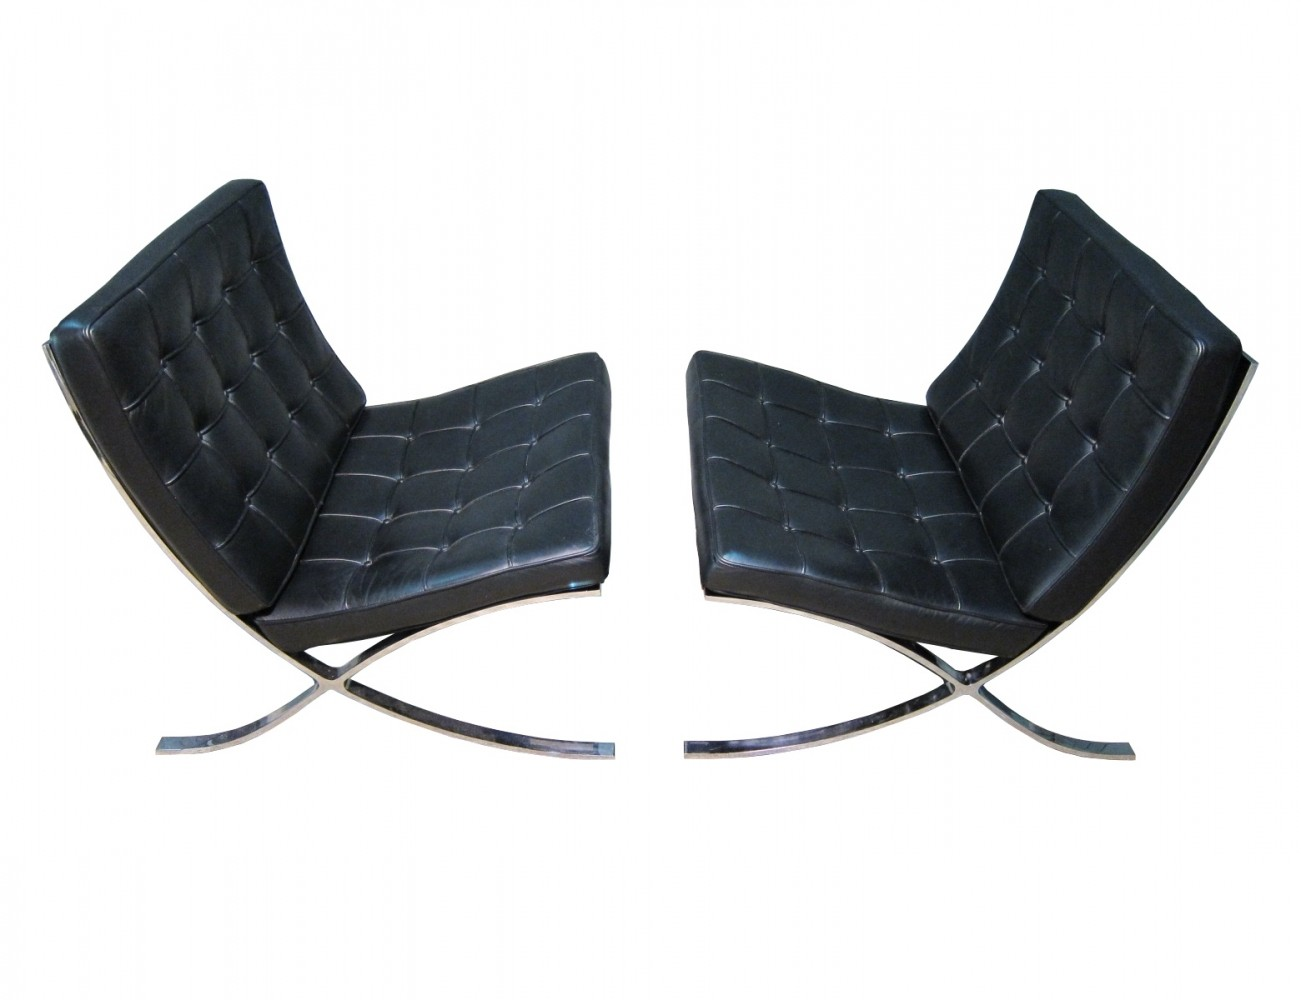 vintage knoll international barcelona chairs by ludwig. Black Bedroom Furniture Sets. Home Design Ideas